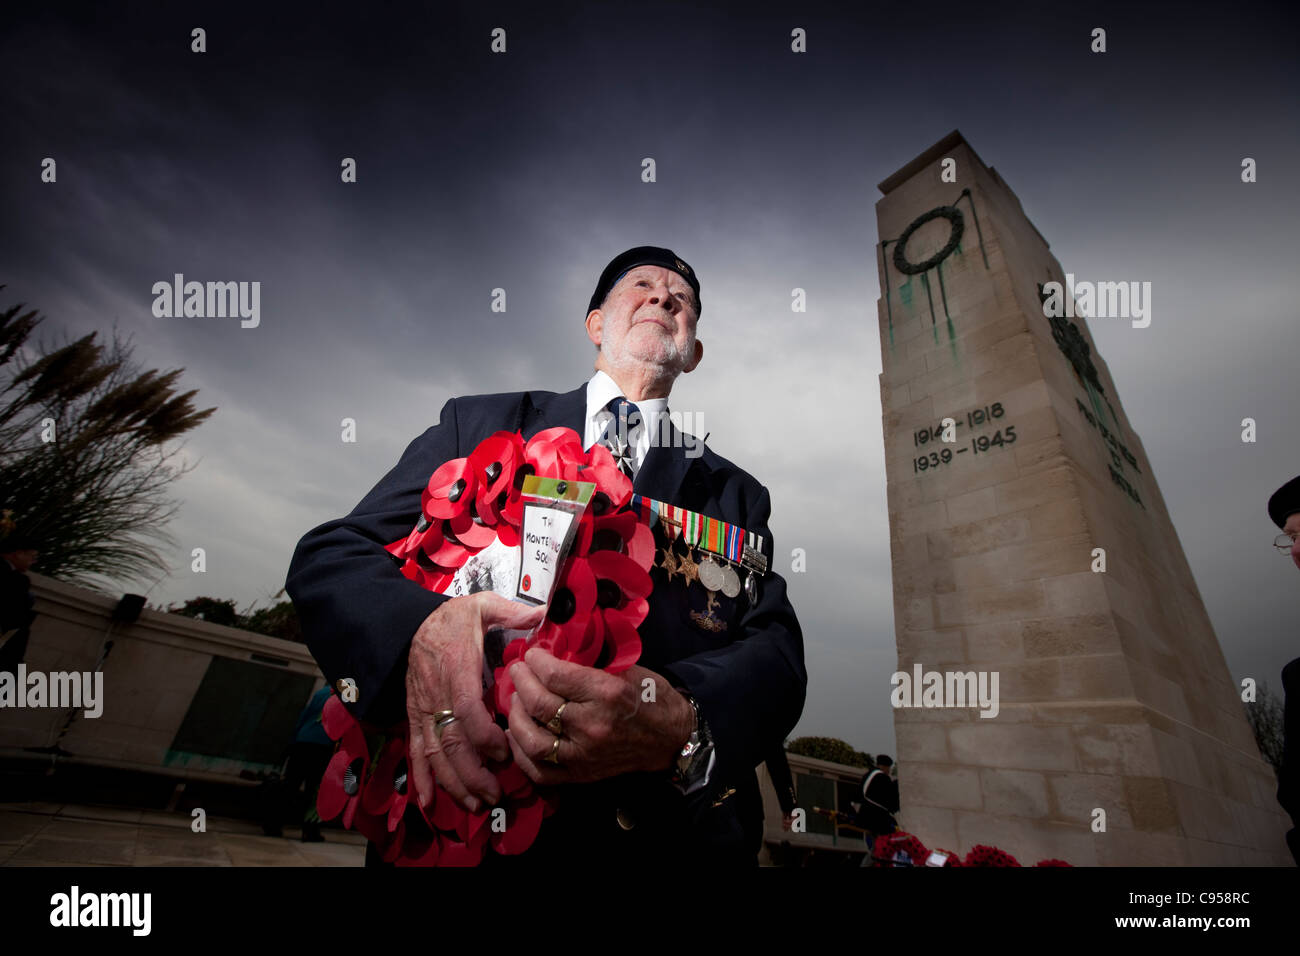 Veteran Harry Launder observes Armistice day at the Cenotaph in Swansea. - Stock Image